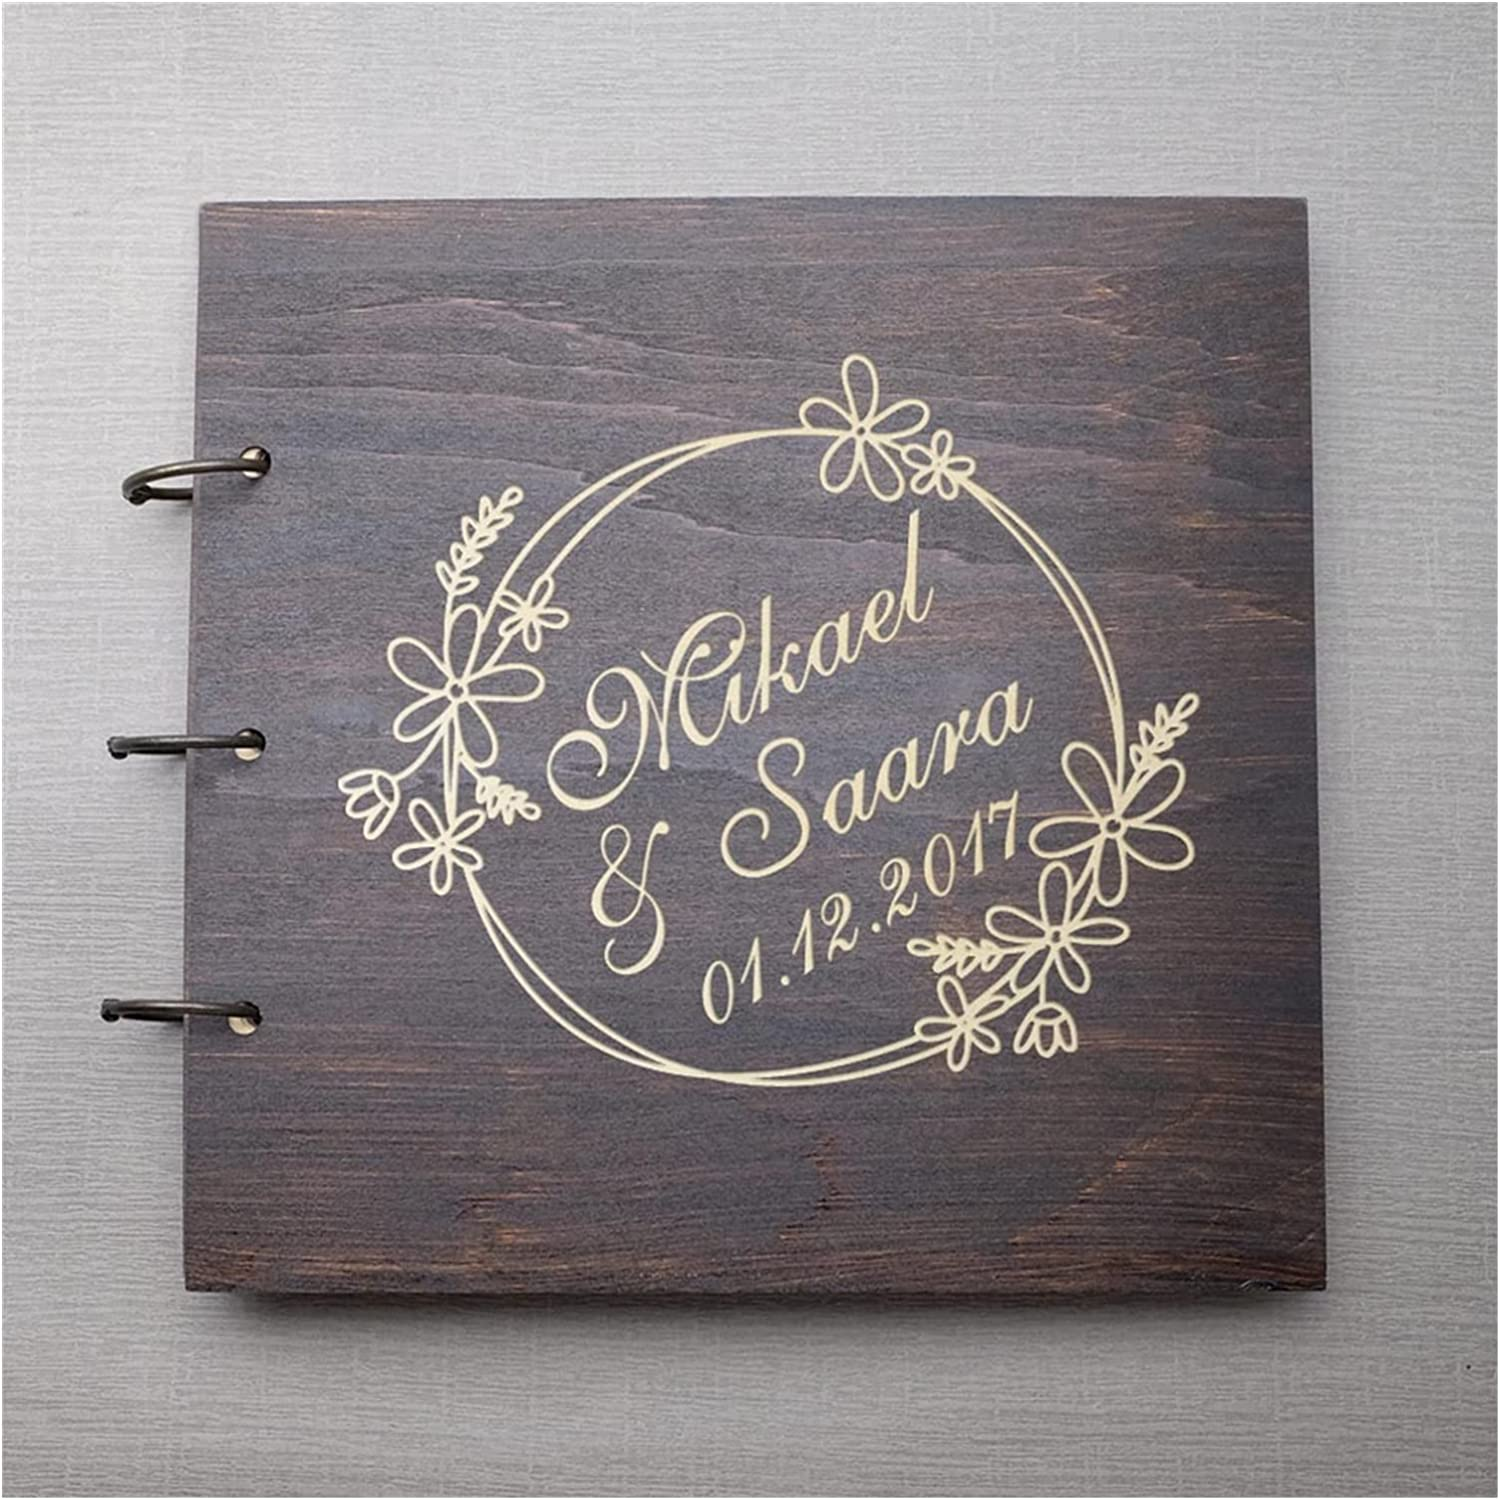 HUMINGG Wedding Guest Ranking TOP19 Book Popularity Boo Personalized Wooden